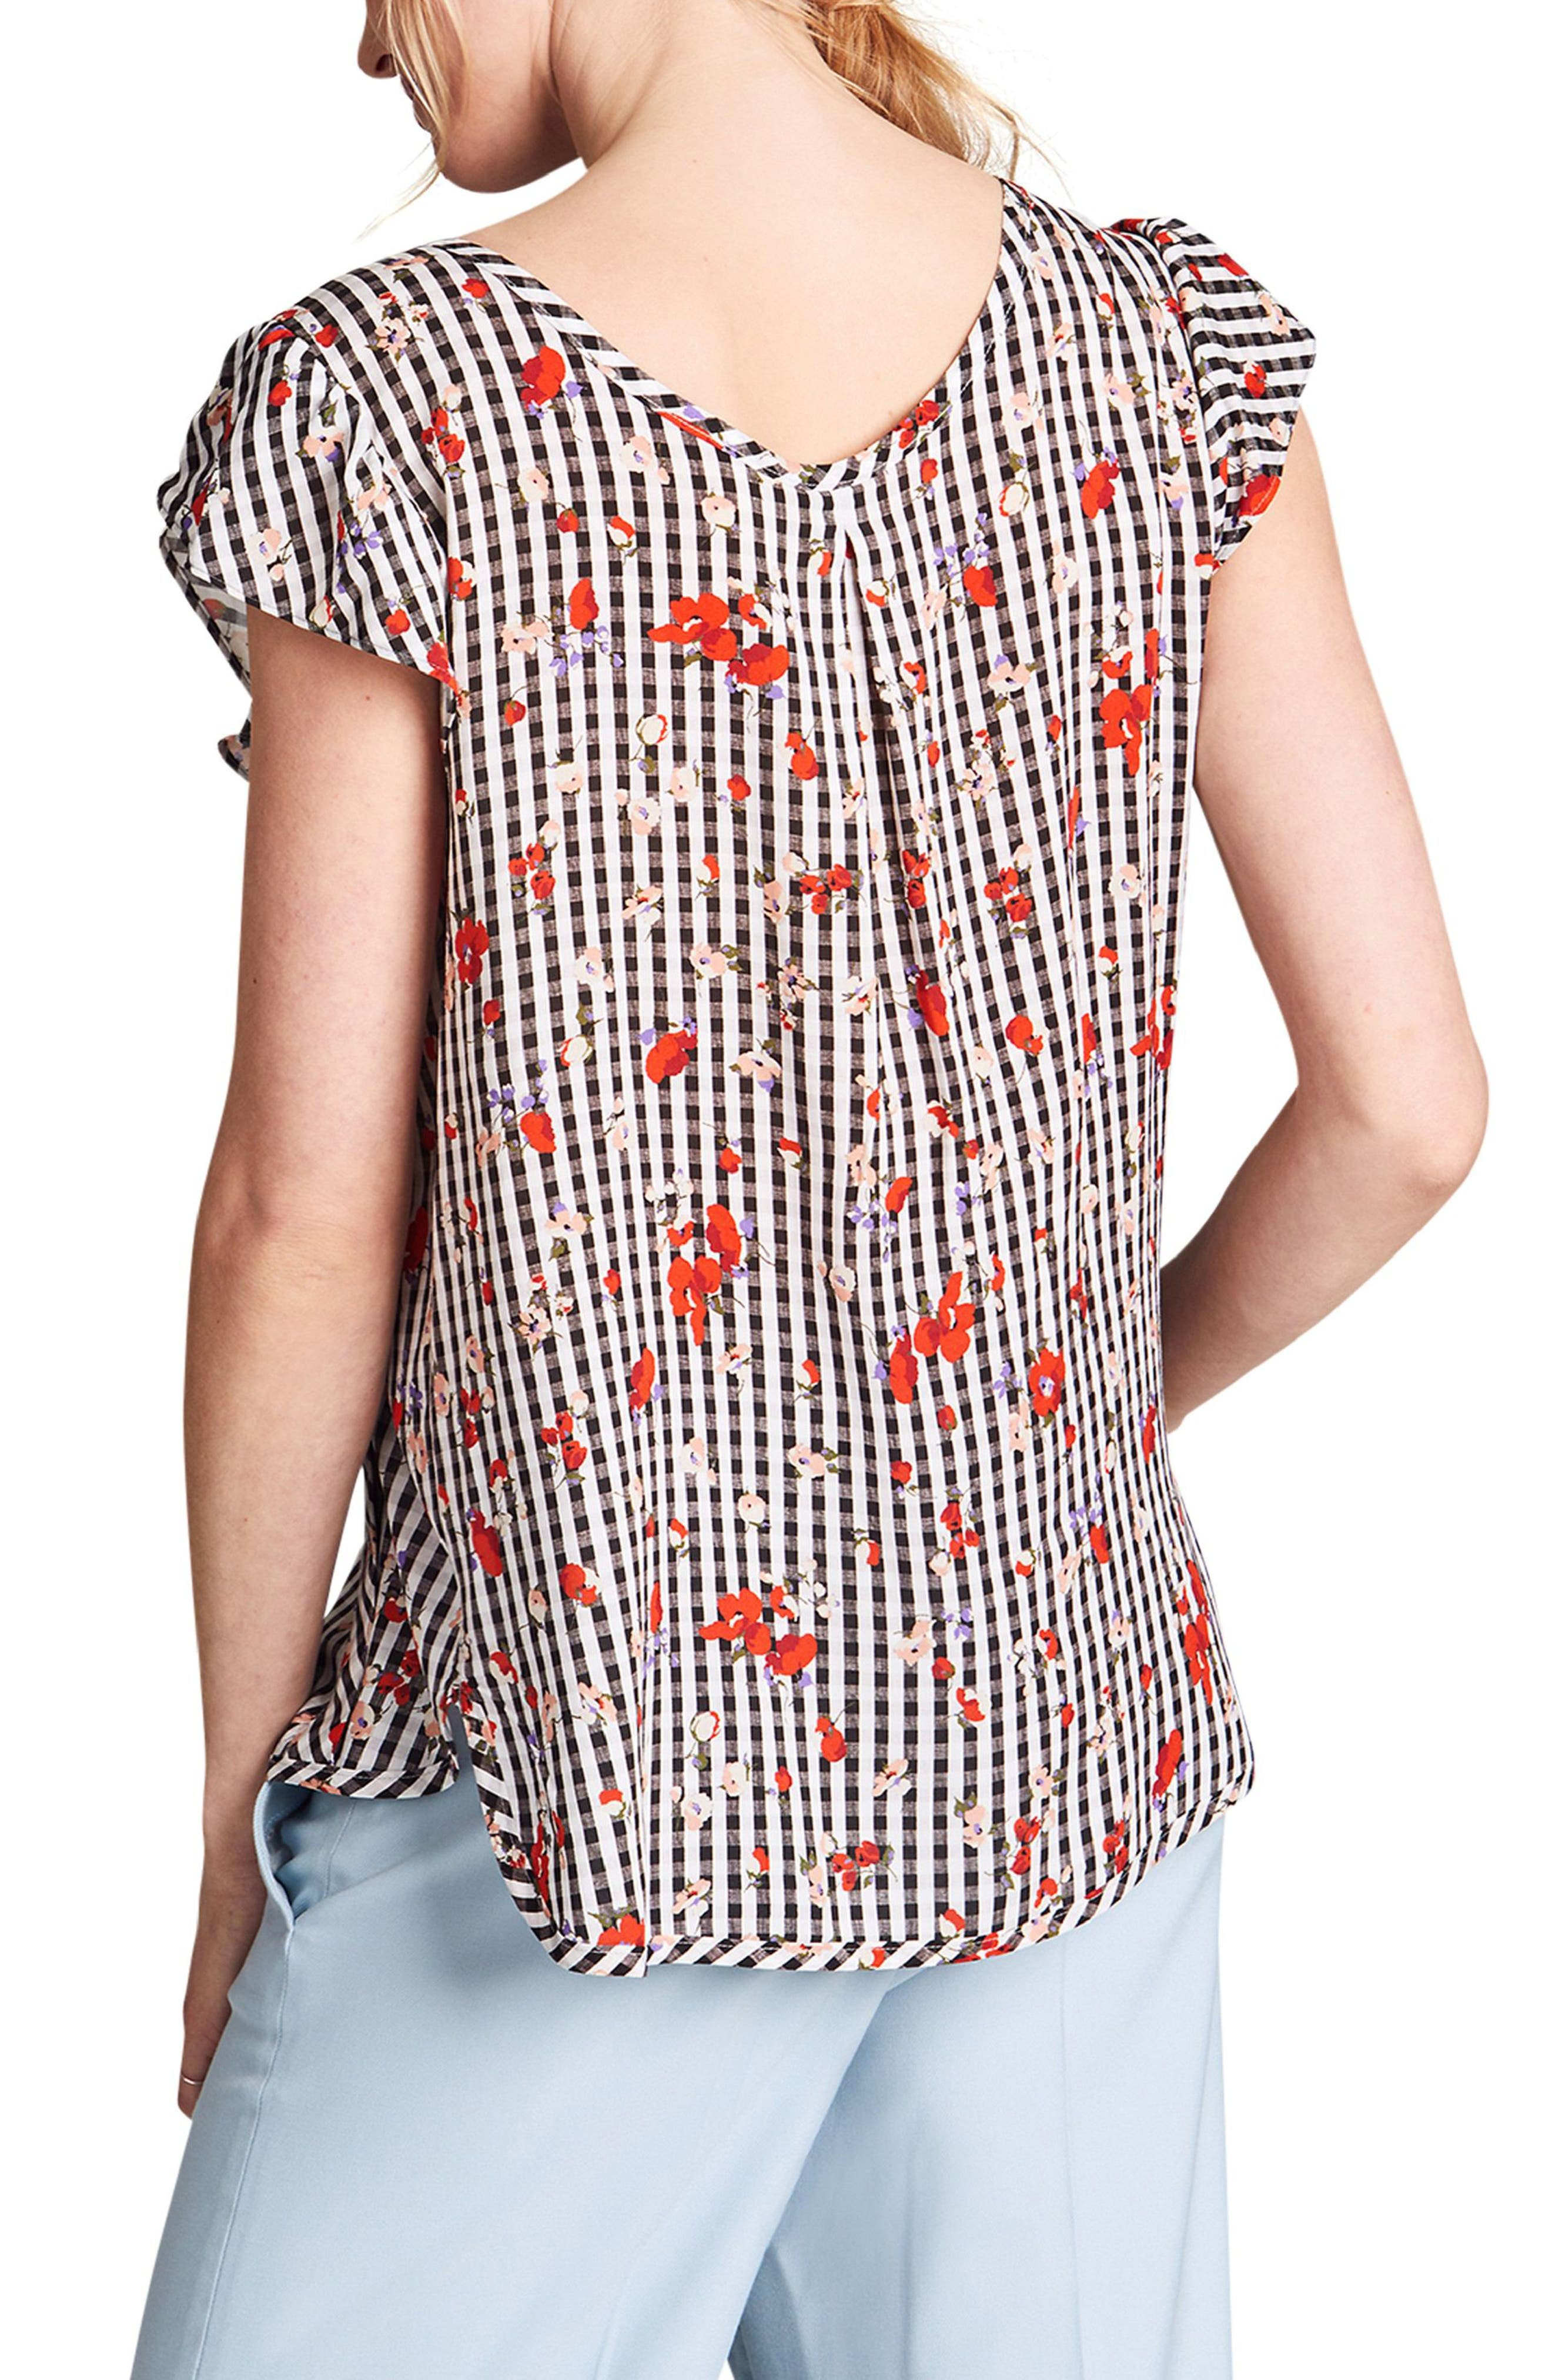 Audrey Nursing Top,                             Alternate thumbnail 2, color,                             Floral Print